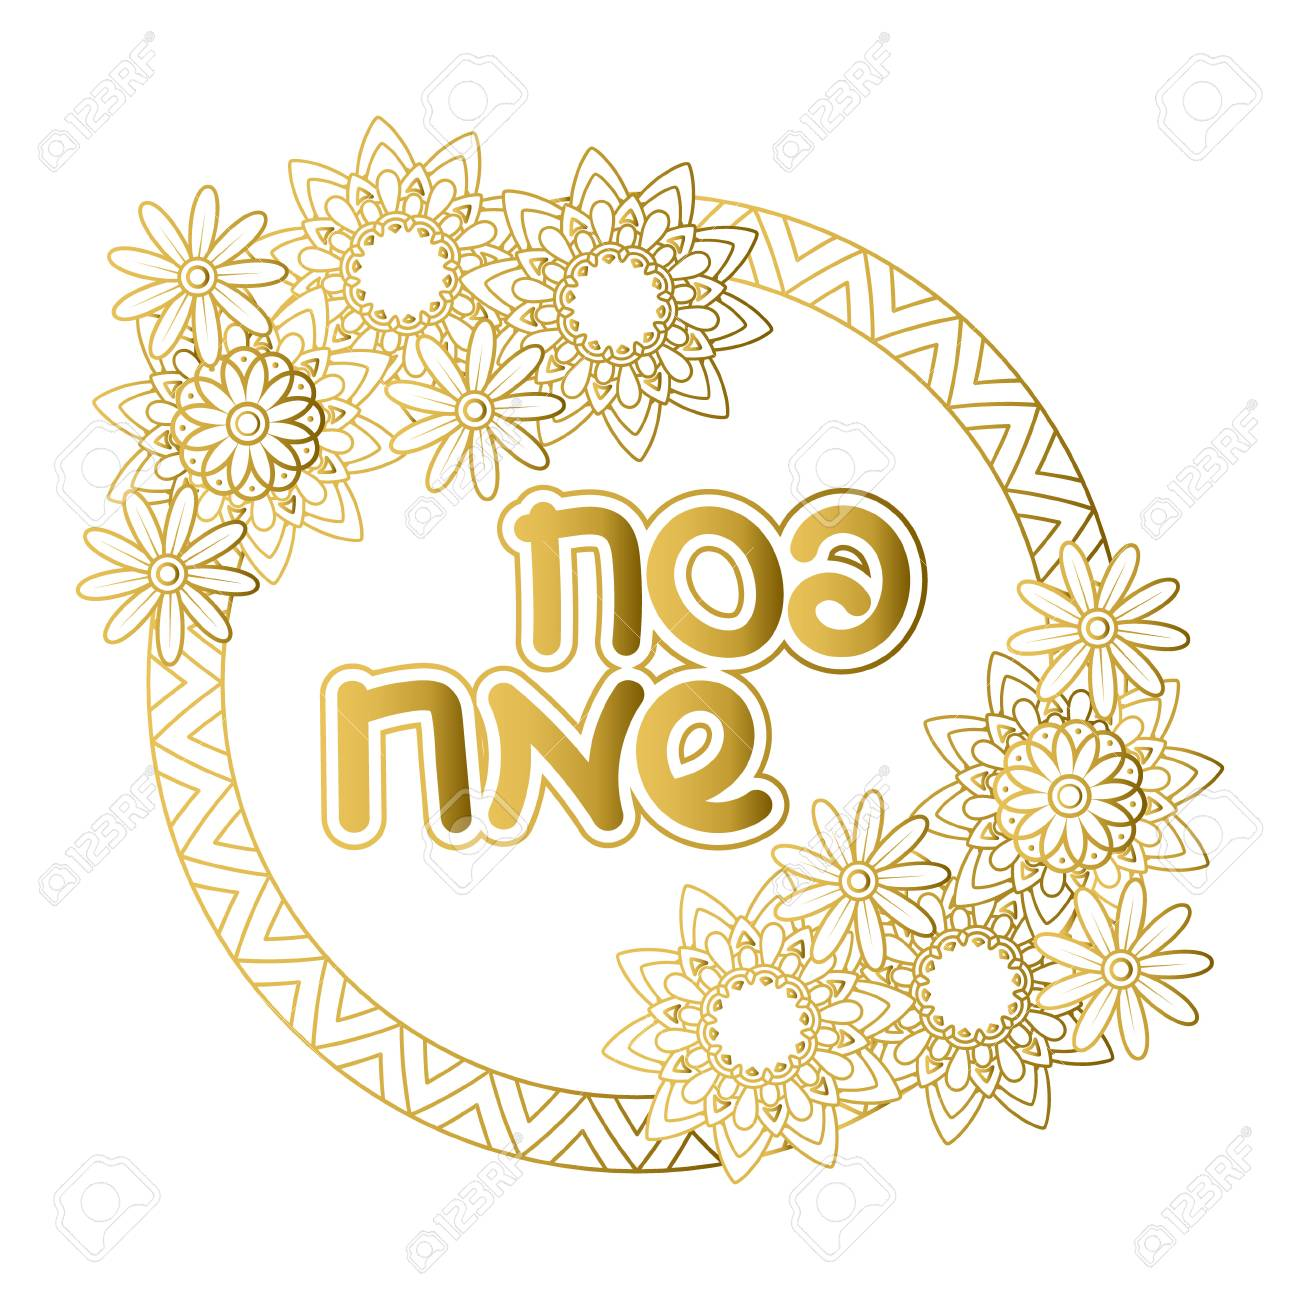 Jewish holiday greeting card template golden spring flowers jewish holiday greeting card template golden spring flowers design text in hebrew happy passover m4hsunfo Image collections